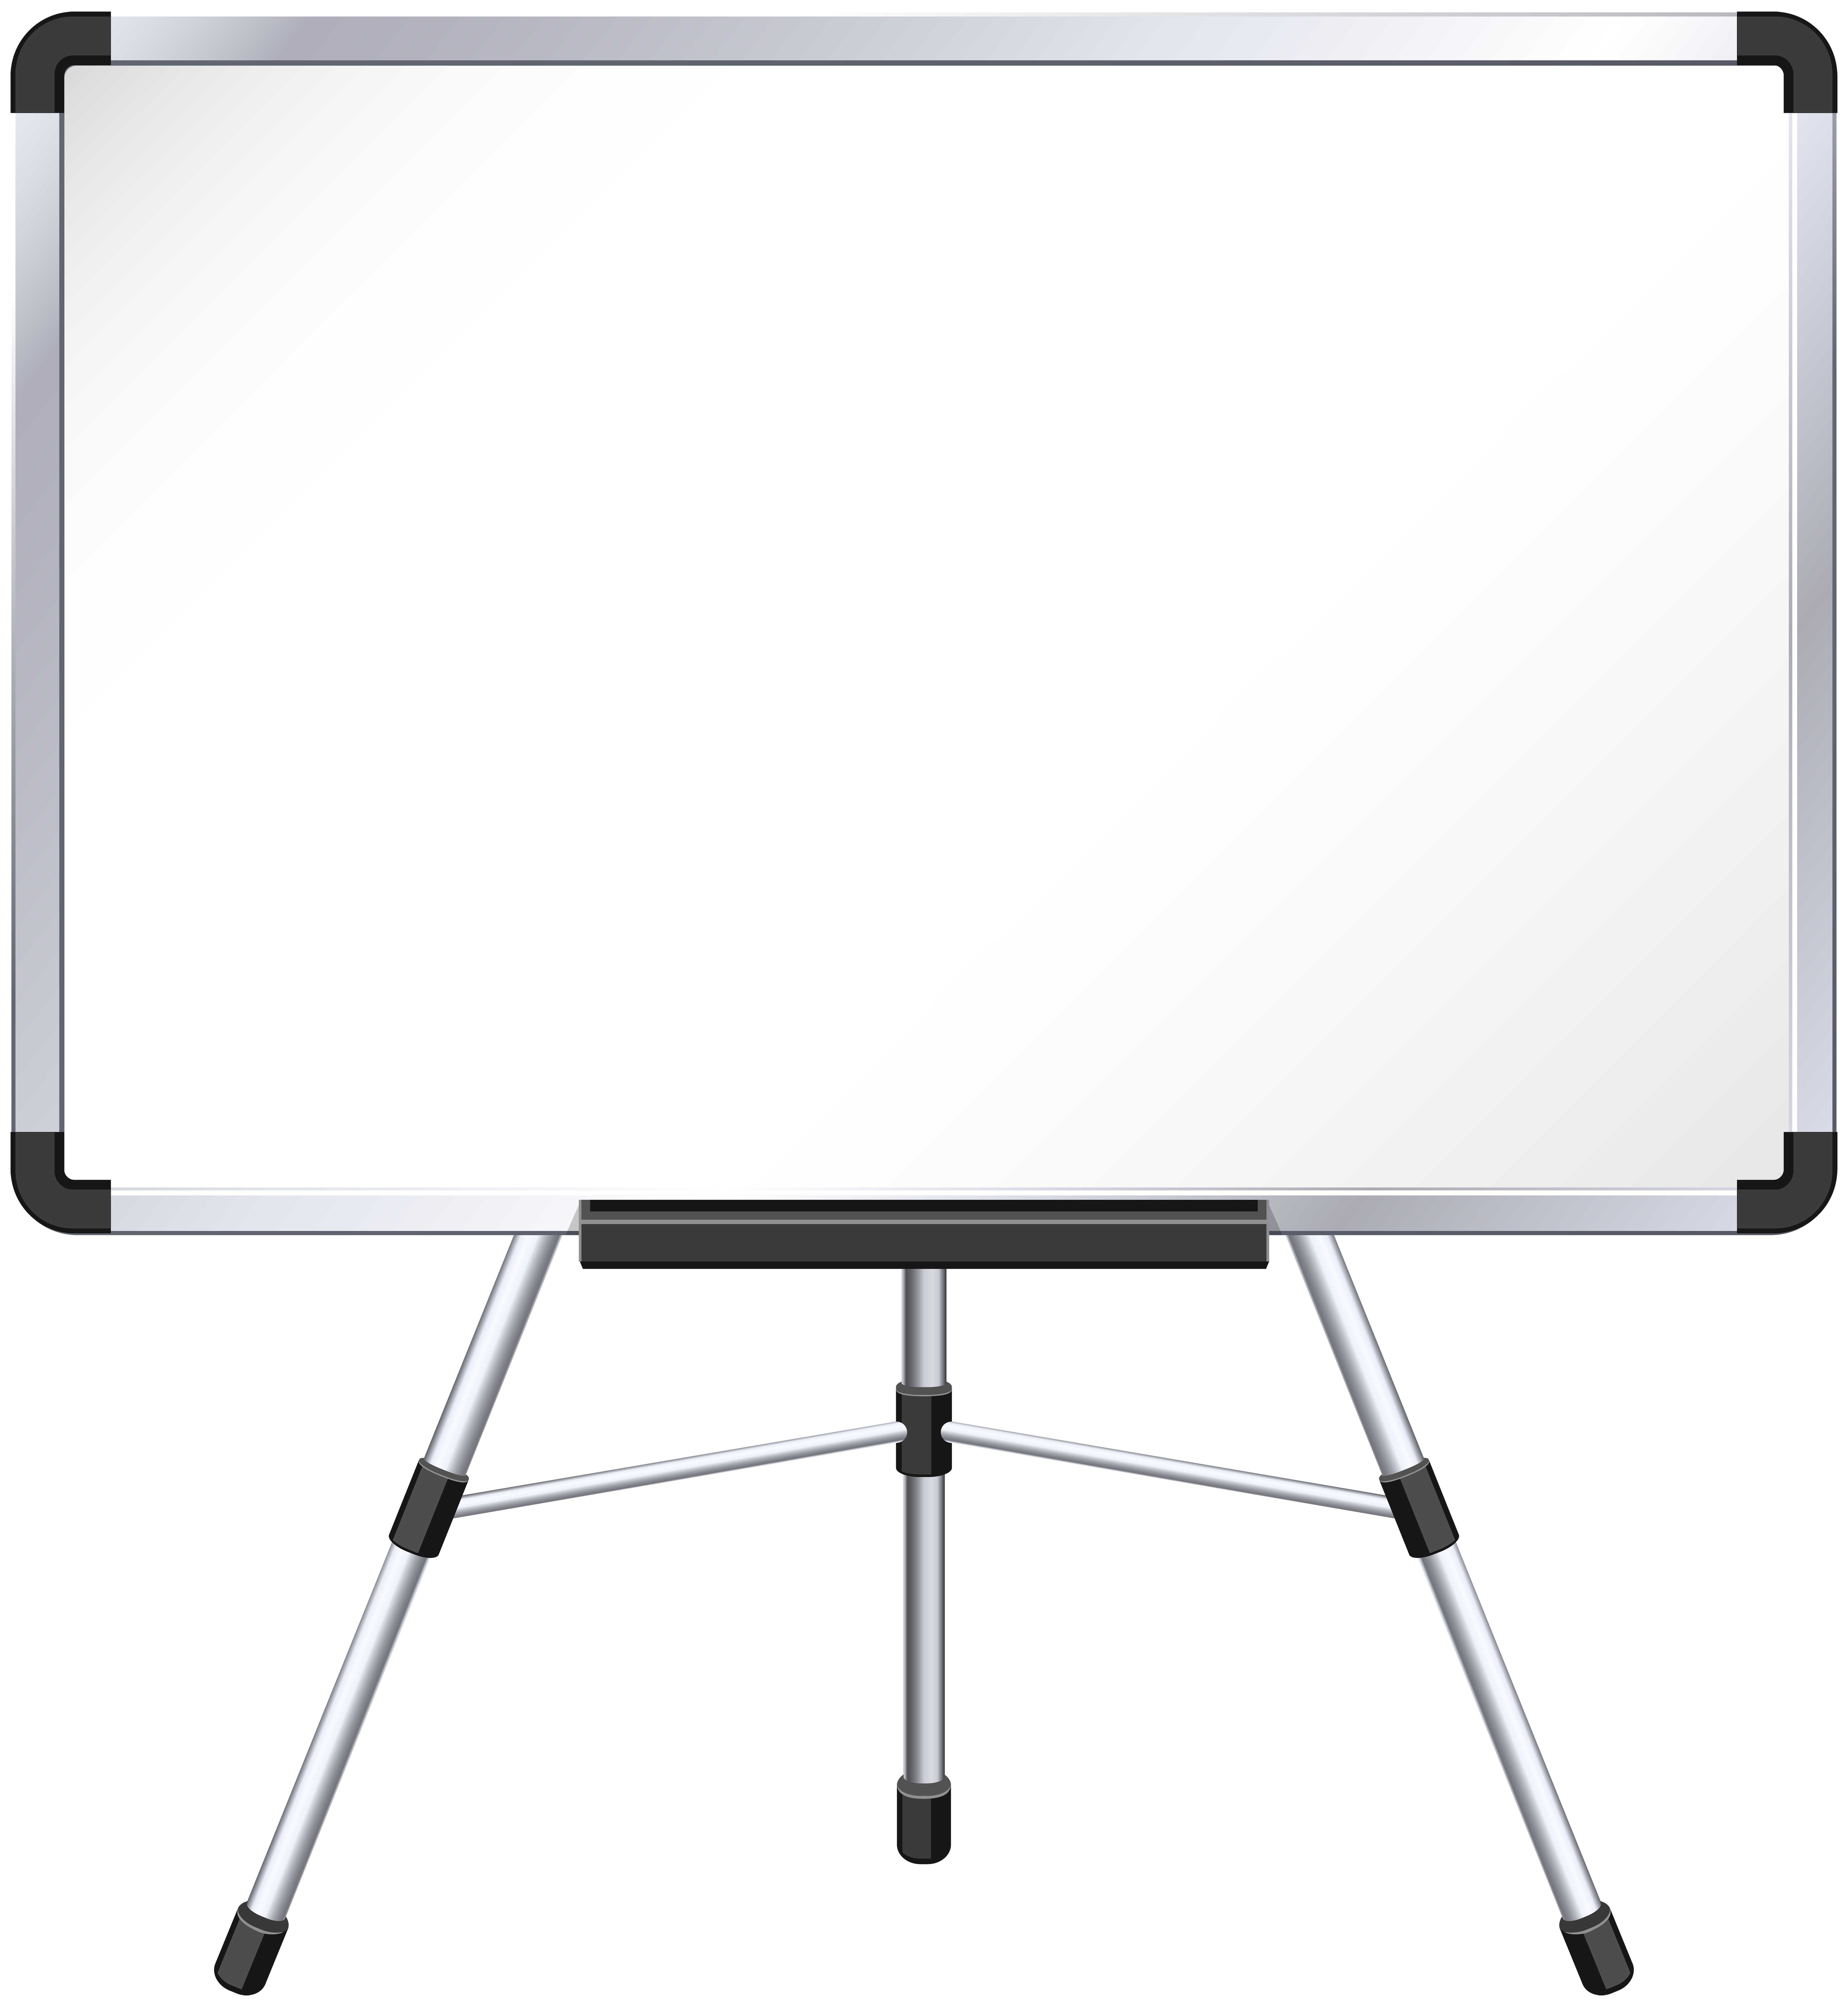 Whiteboard clipart whiteboard easel. Png clip art image